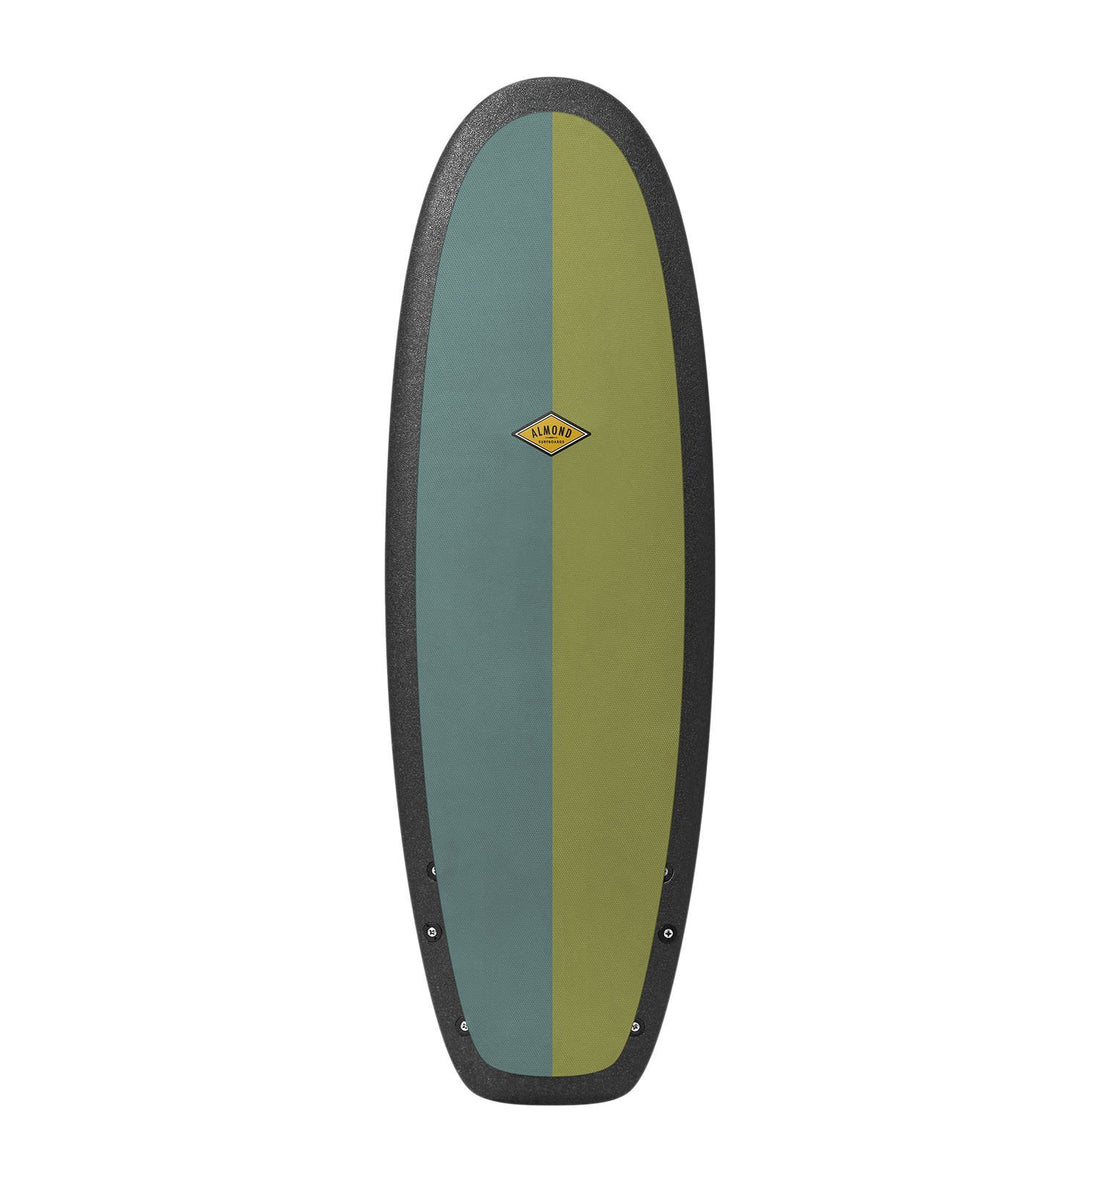 "Almond Surfboards & Design R-Series Secret Menu - Seafoam Green - 5'4"" - Surf - Iron and Resin"